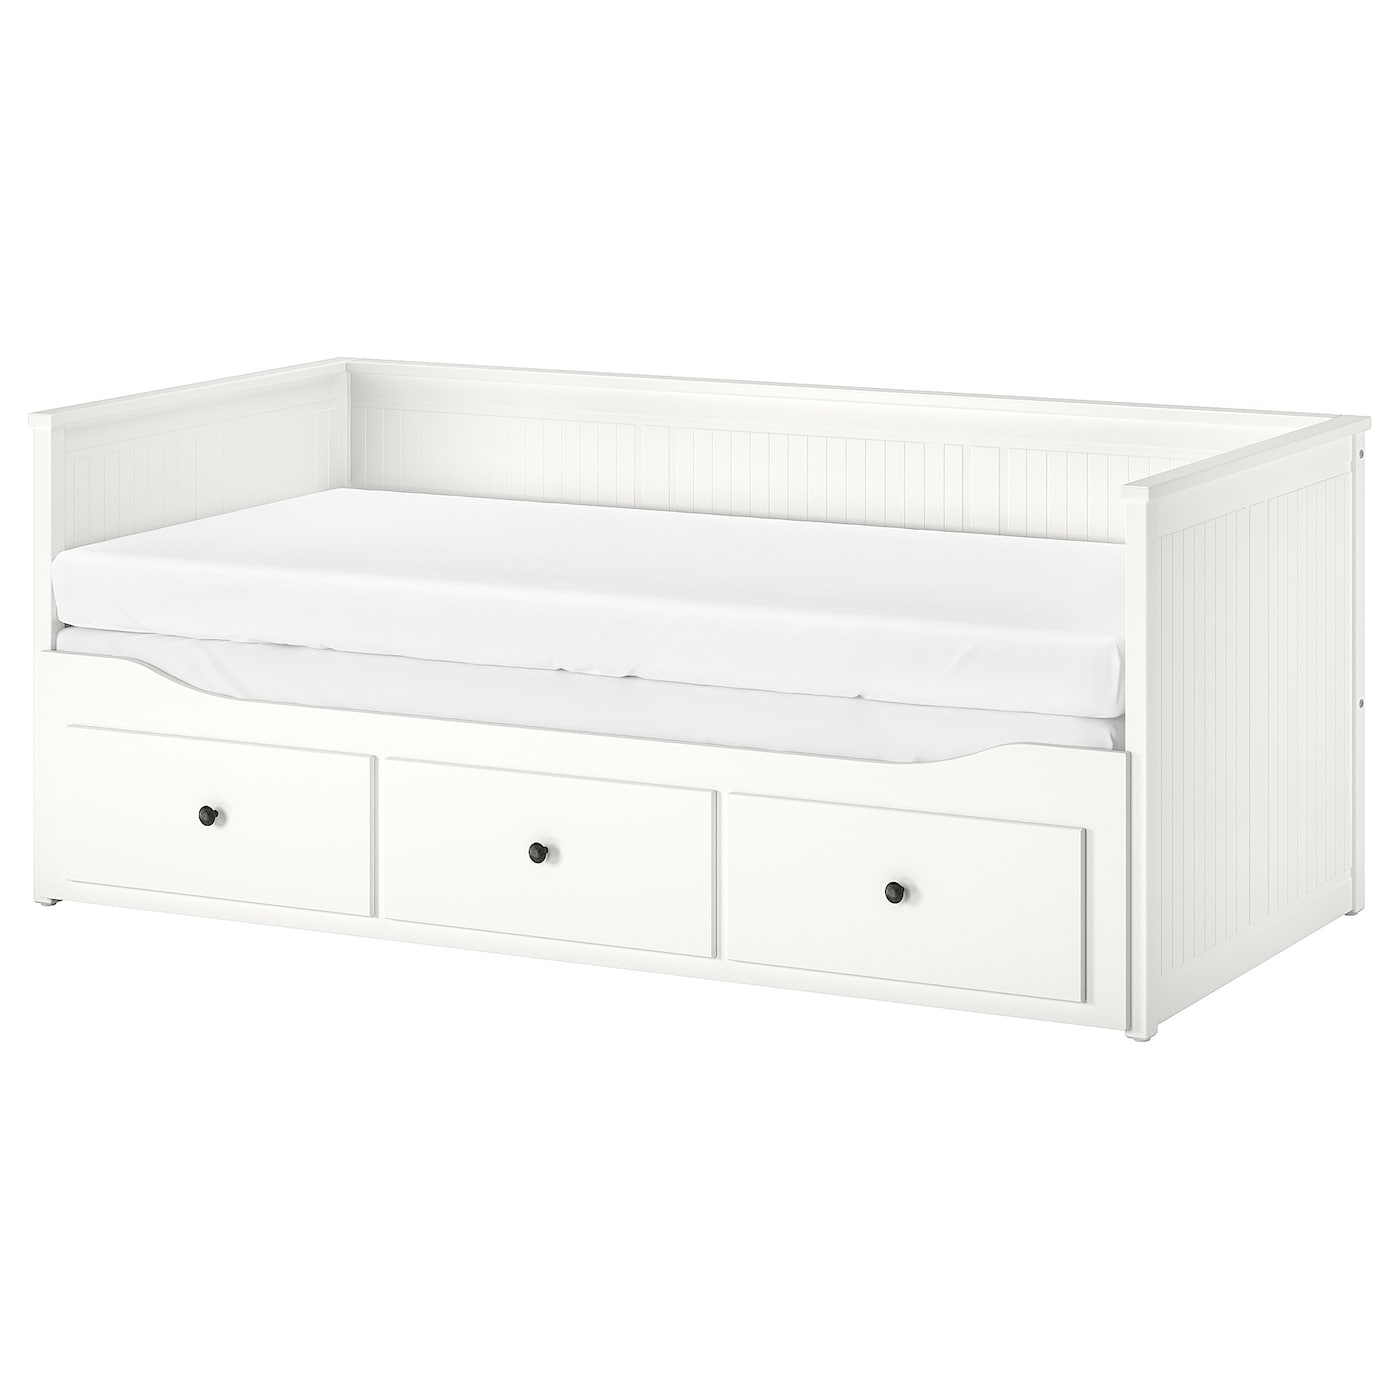 - HEMNES White, Day-bed With 3 Drawers, 80x200 Cm - IKEA